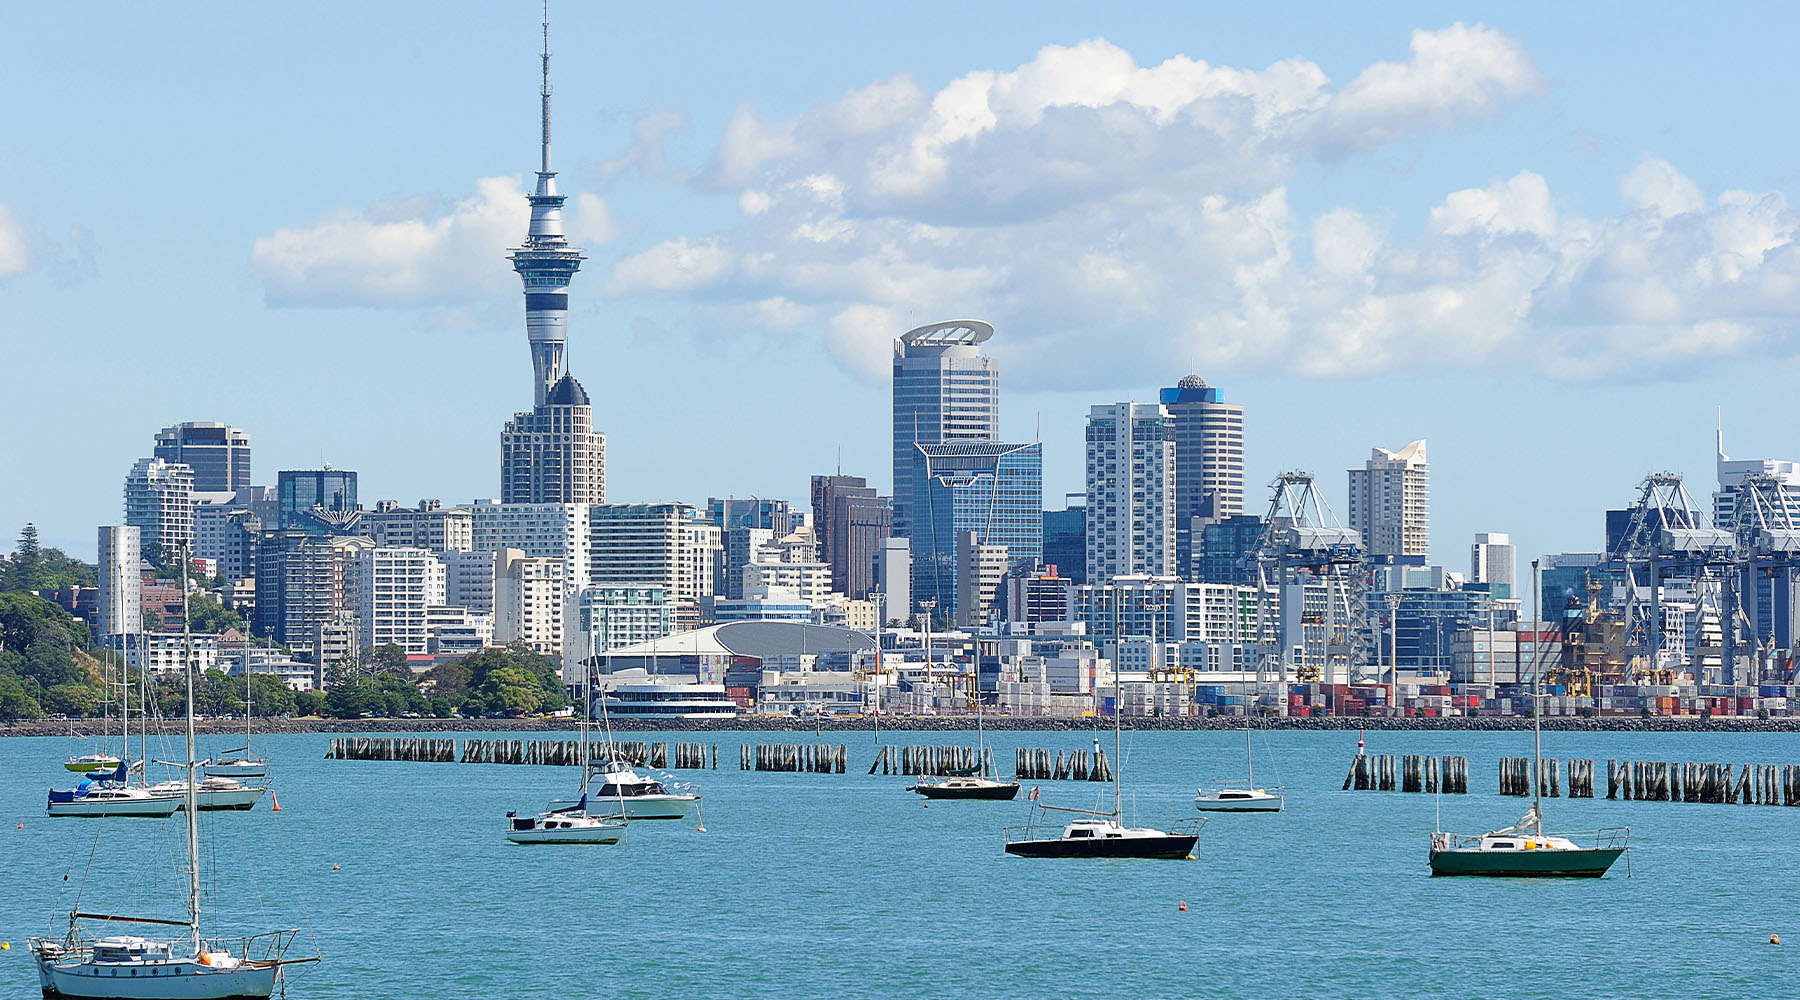 Auckland skyline from across a bay